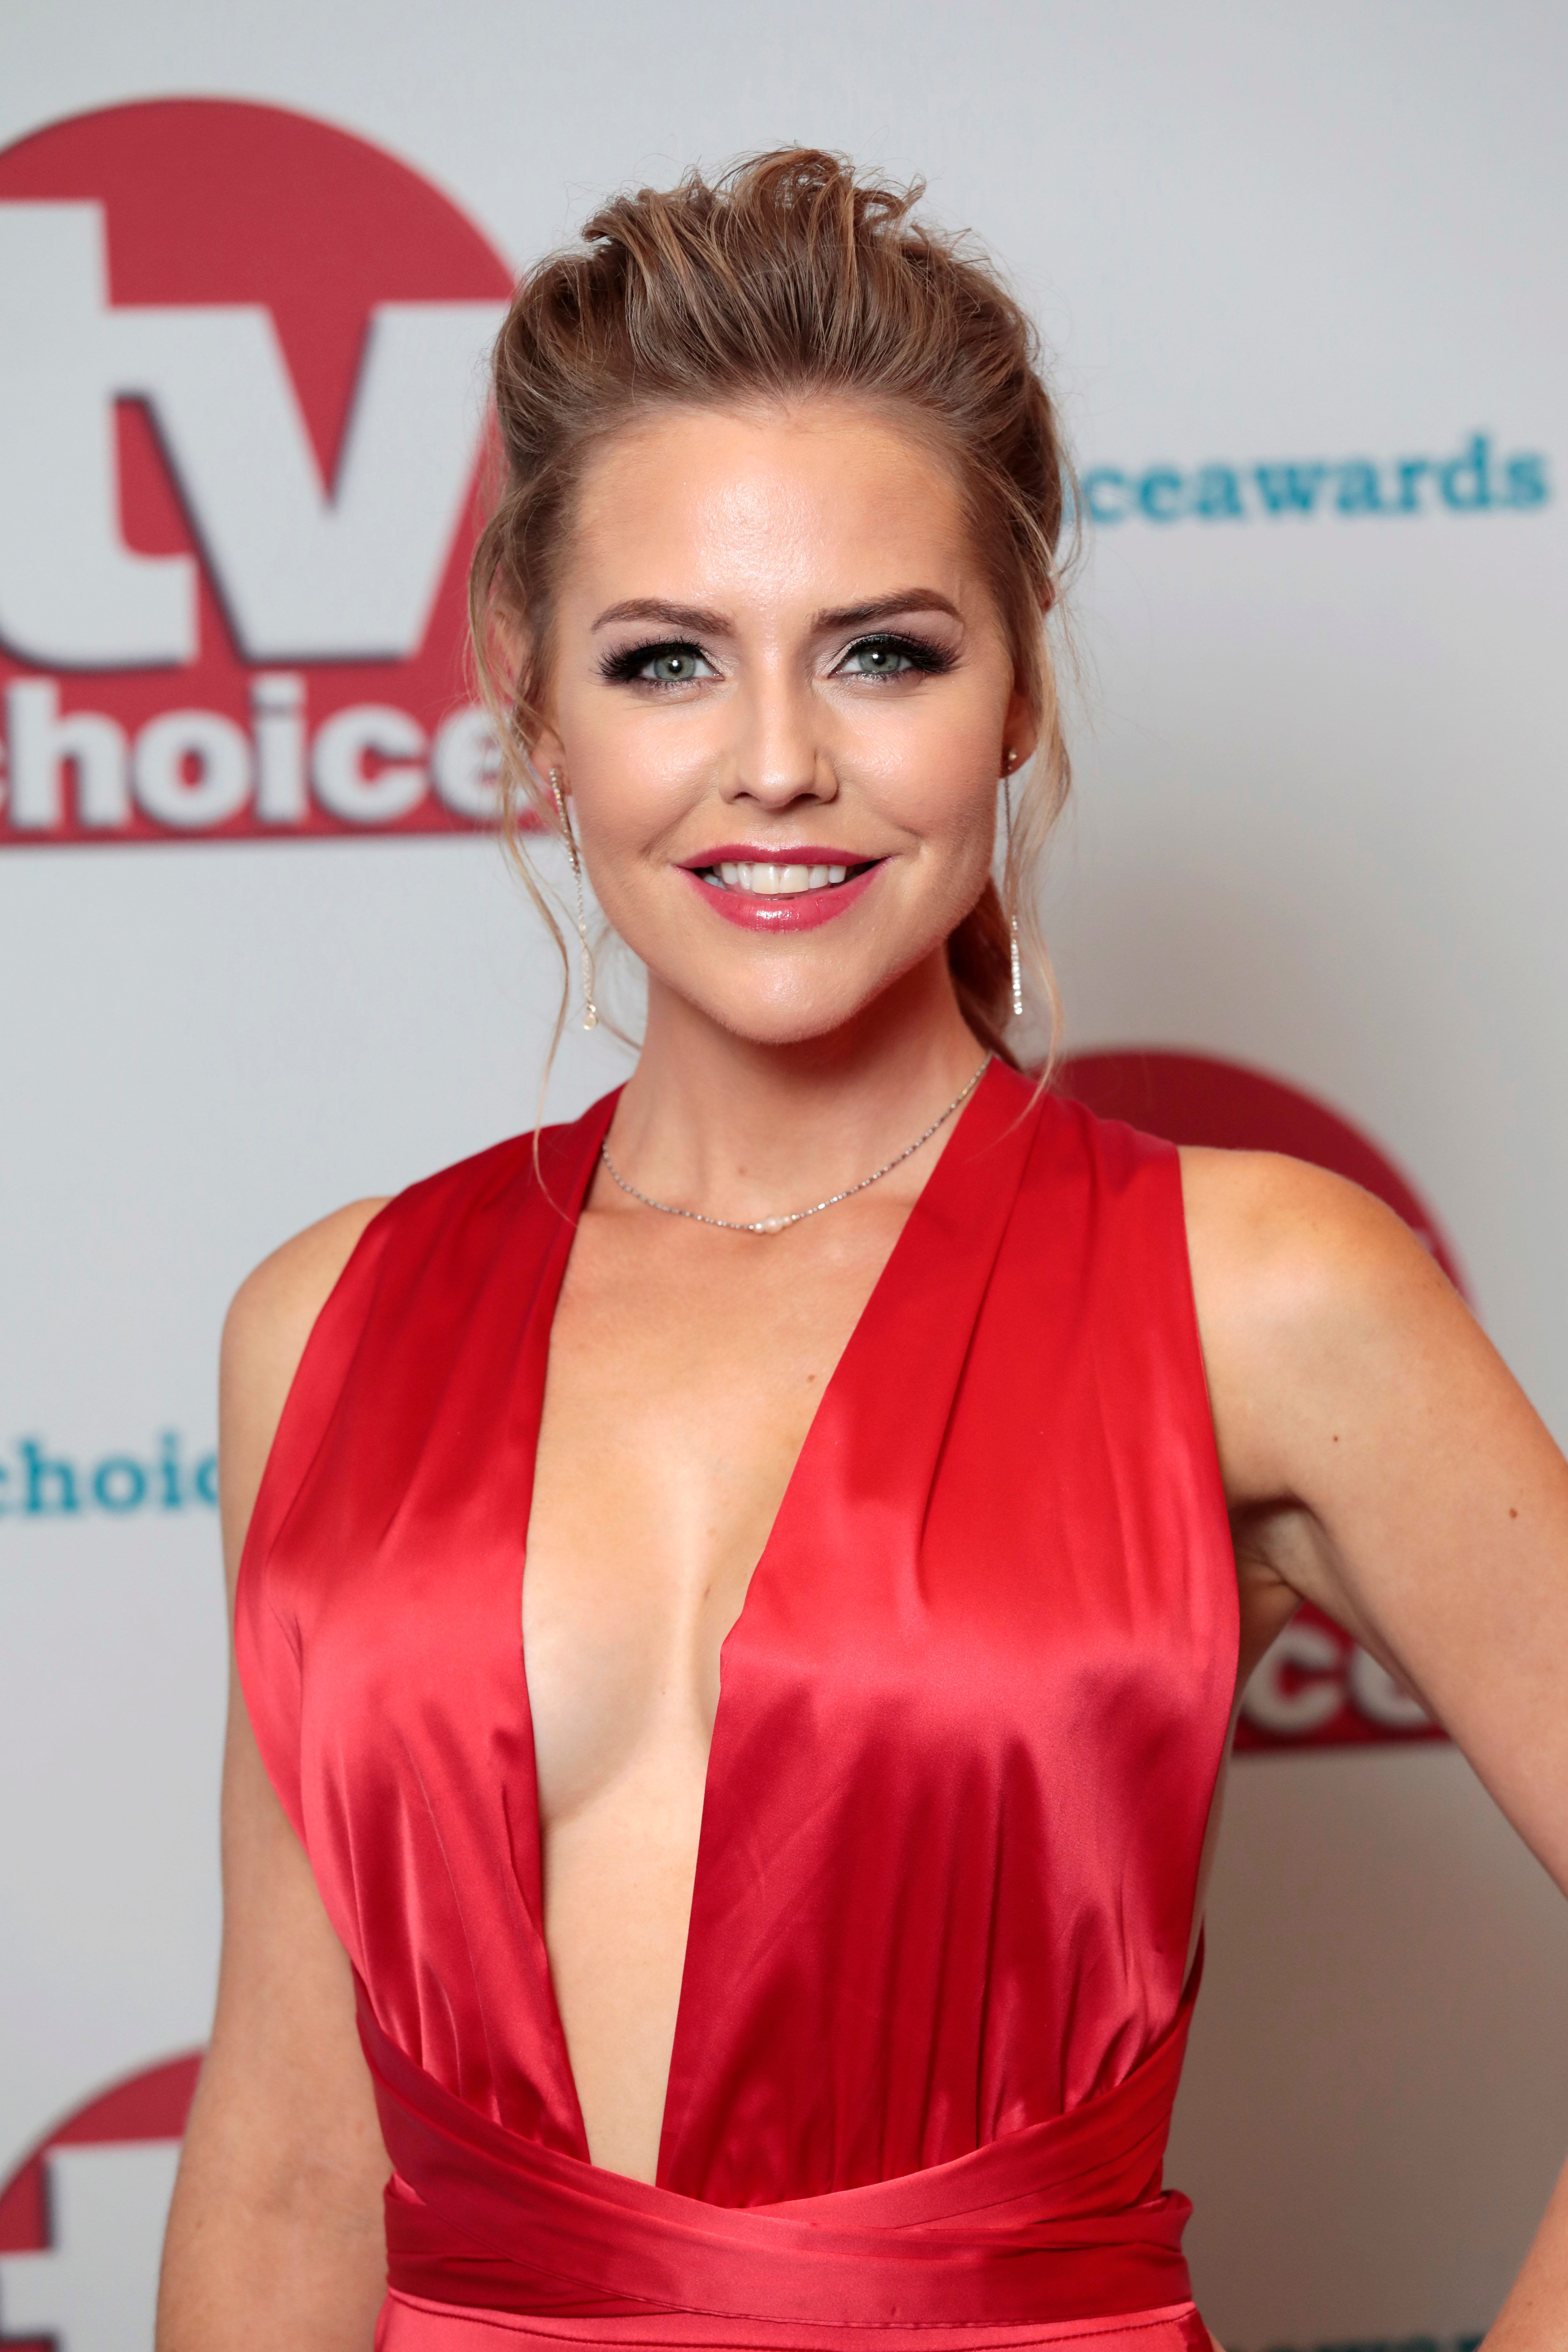 'Hollyoaks' Star Stephanie Waring Completes 'Dancing On Ice'